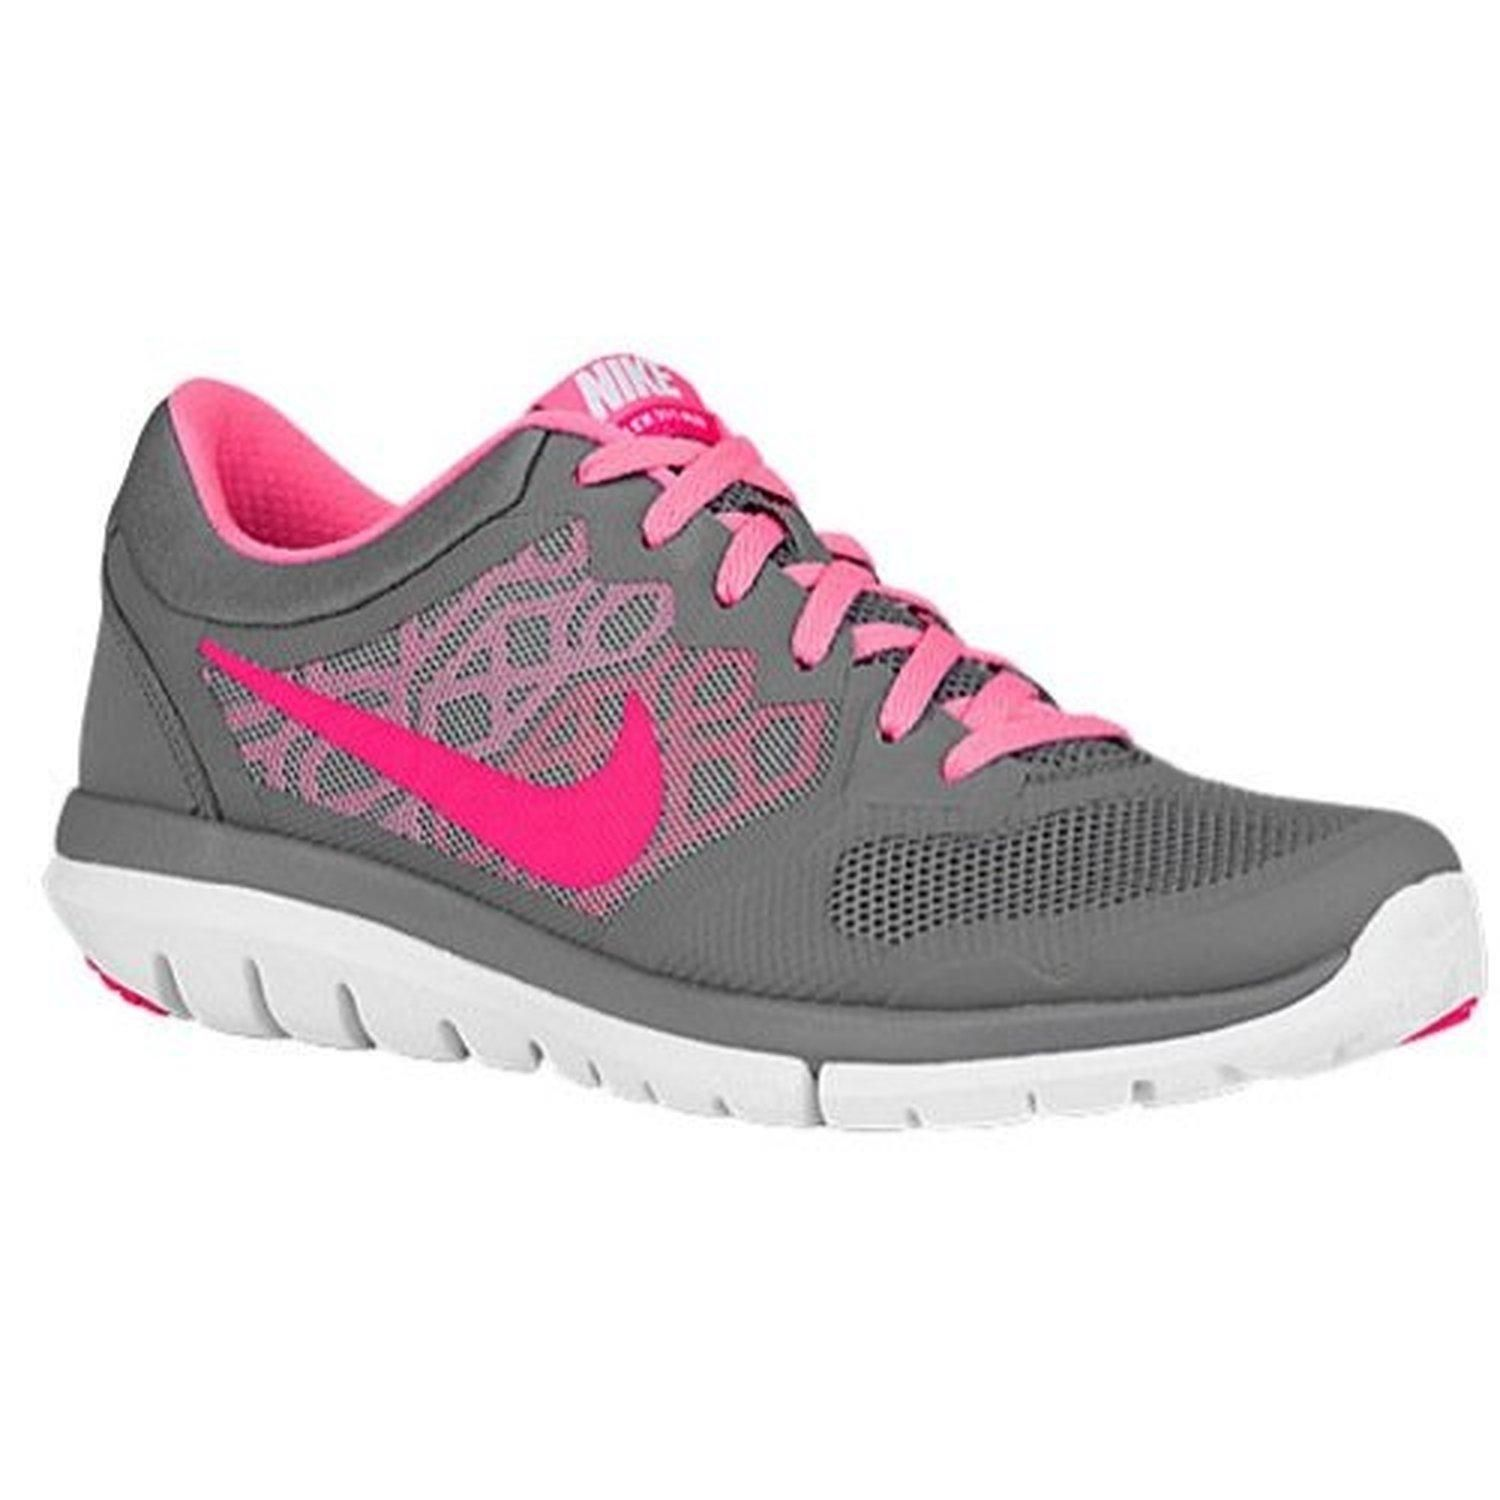 Nike Flex 2015 Rn Sz 5 Womens Running Shoes Grey New In Box - Brought to